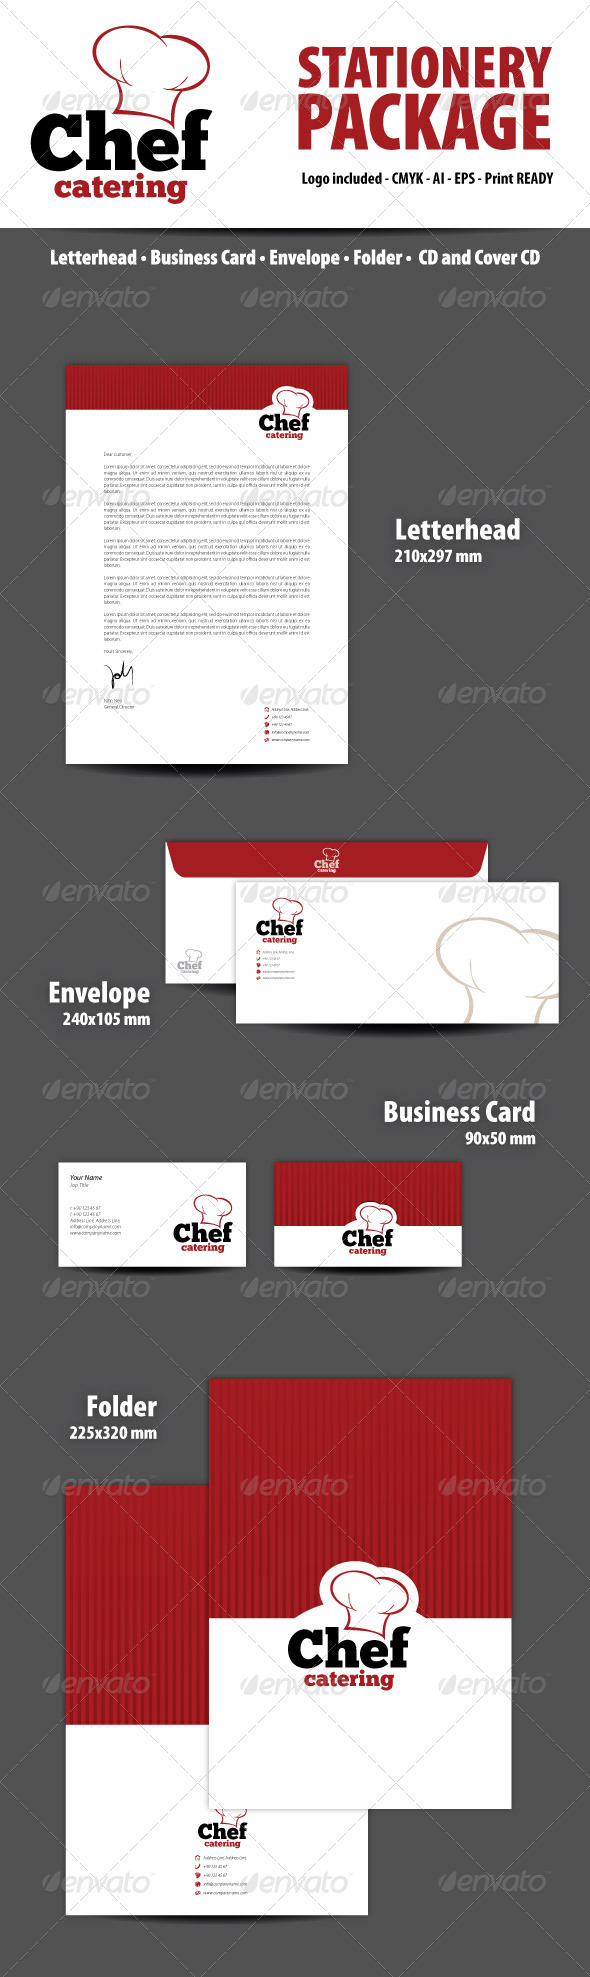 Chef Catering Stationery Package - Stationery Print Templates